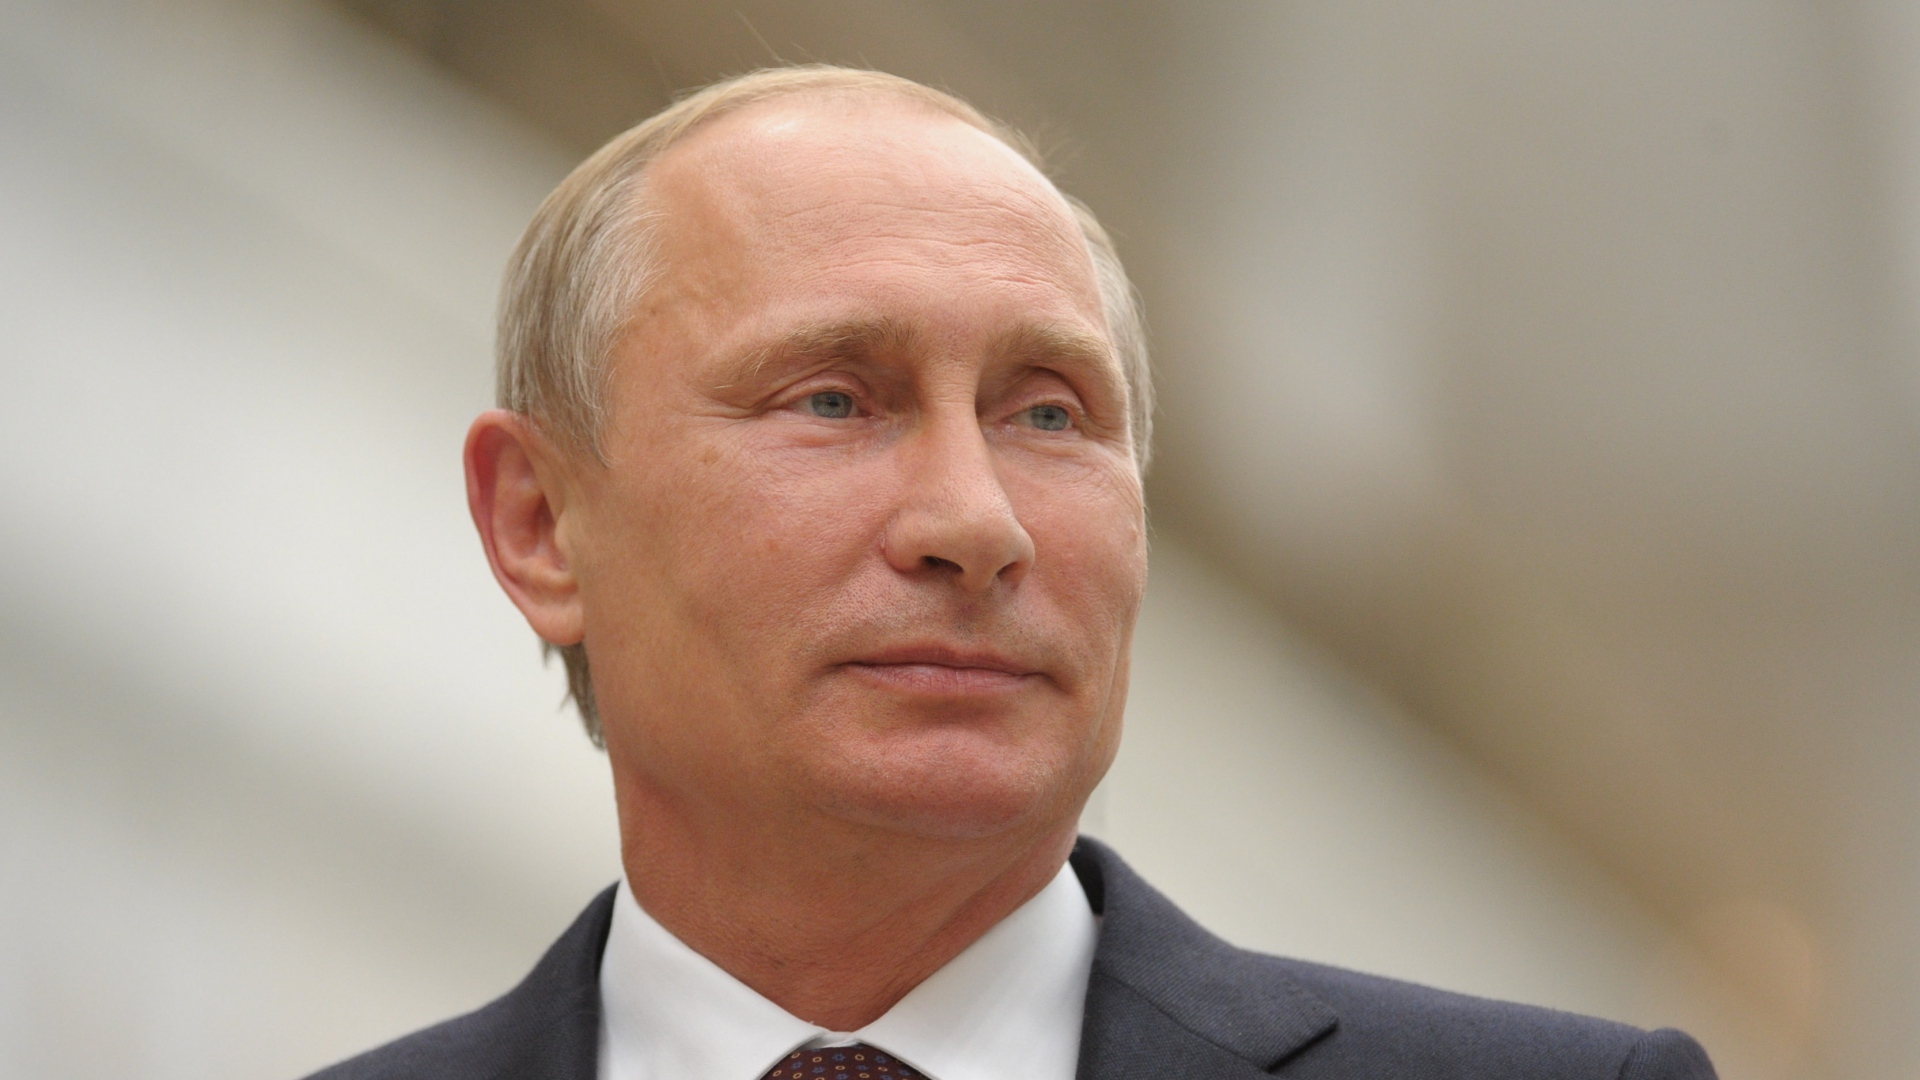 Download Vladimir Putin Wallpaper Gallery